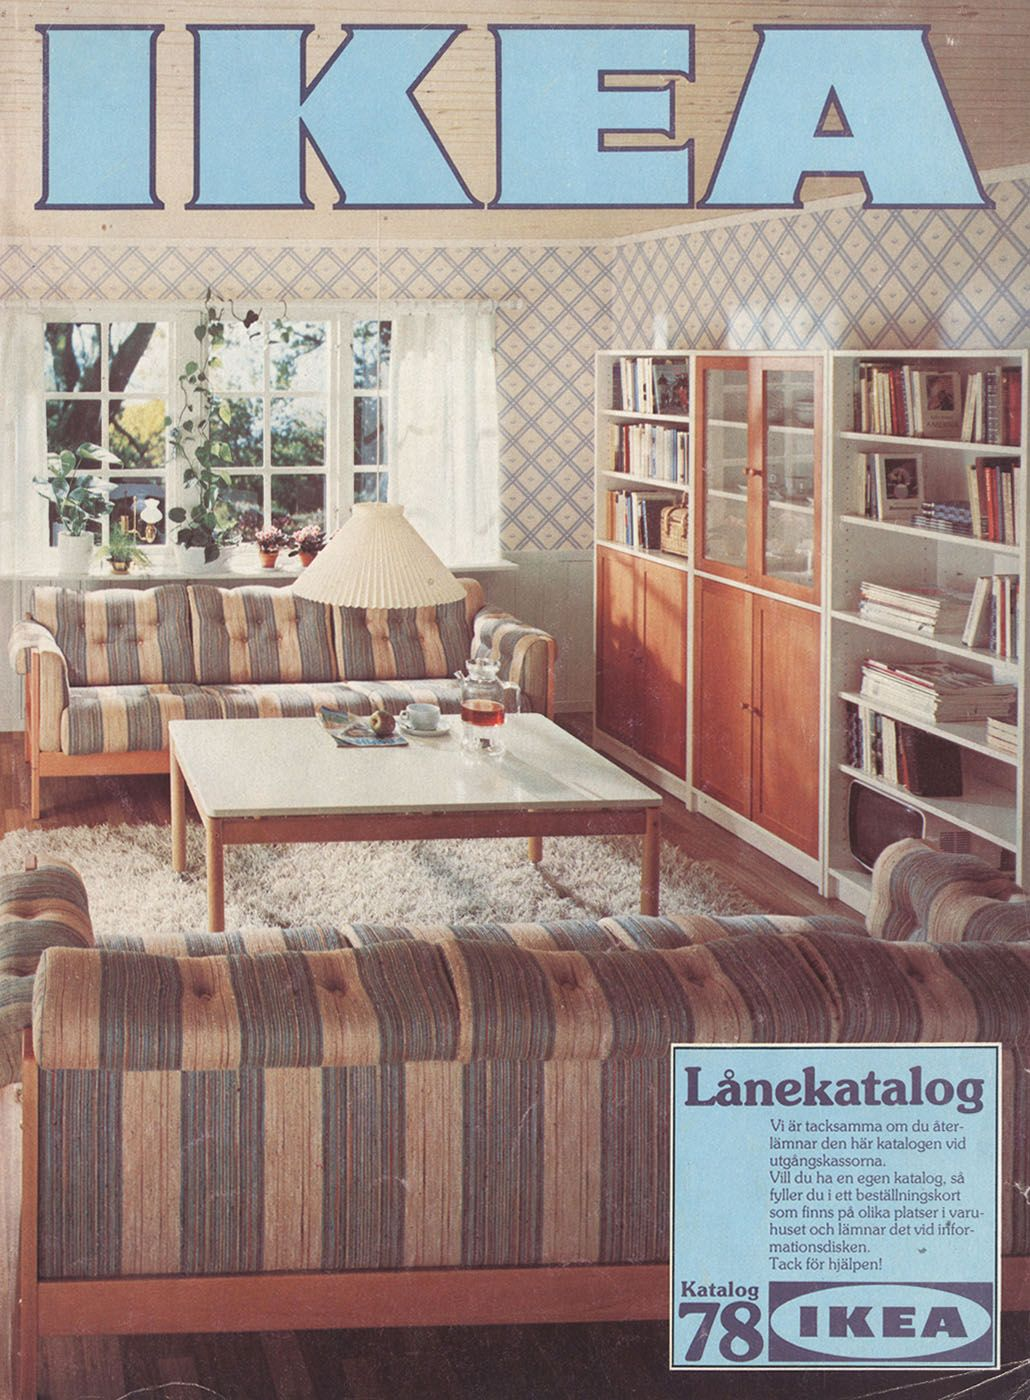 Can You Spot Any Differences Between Vintage And Modern IKEA Catalogues?    Joyenergizer